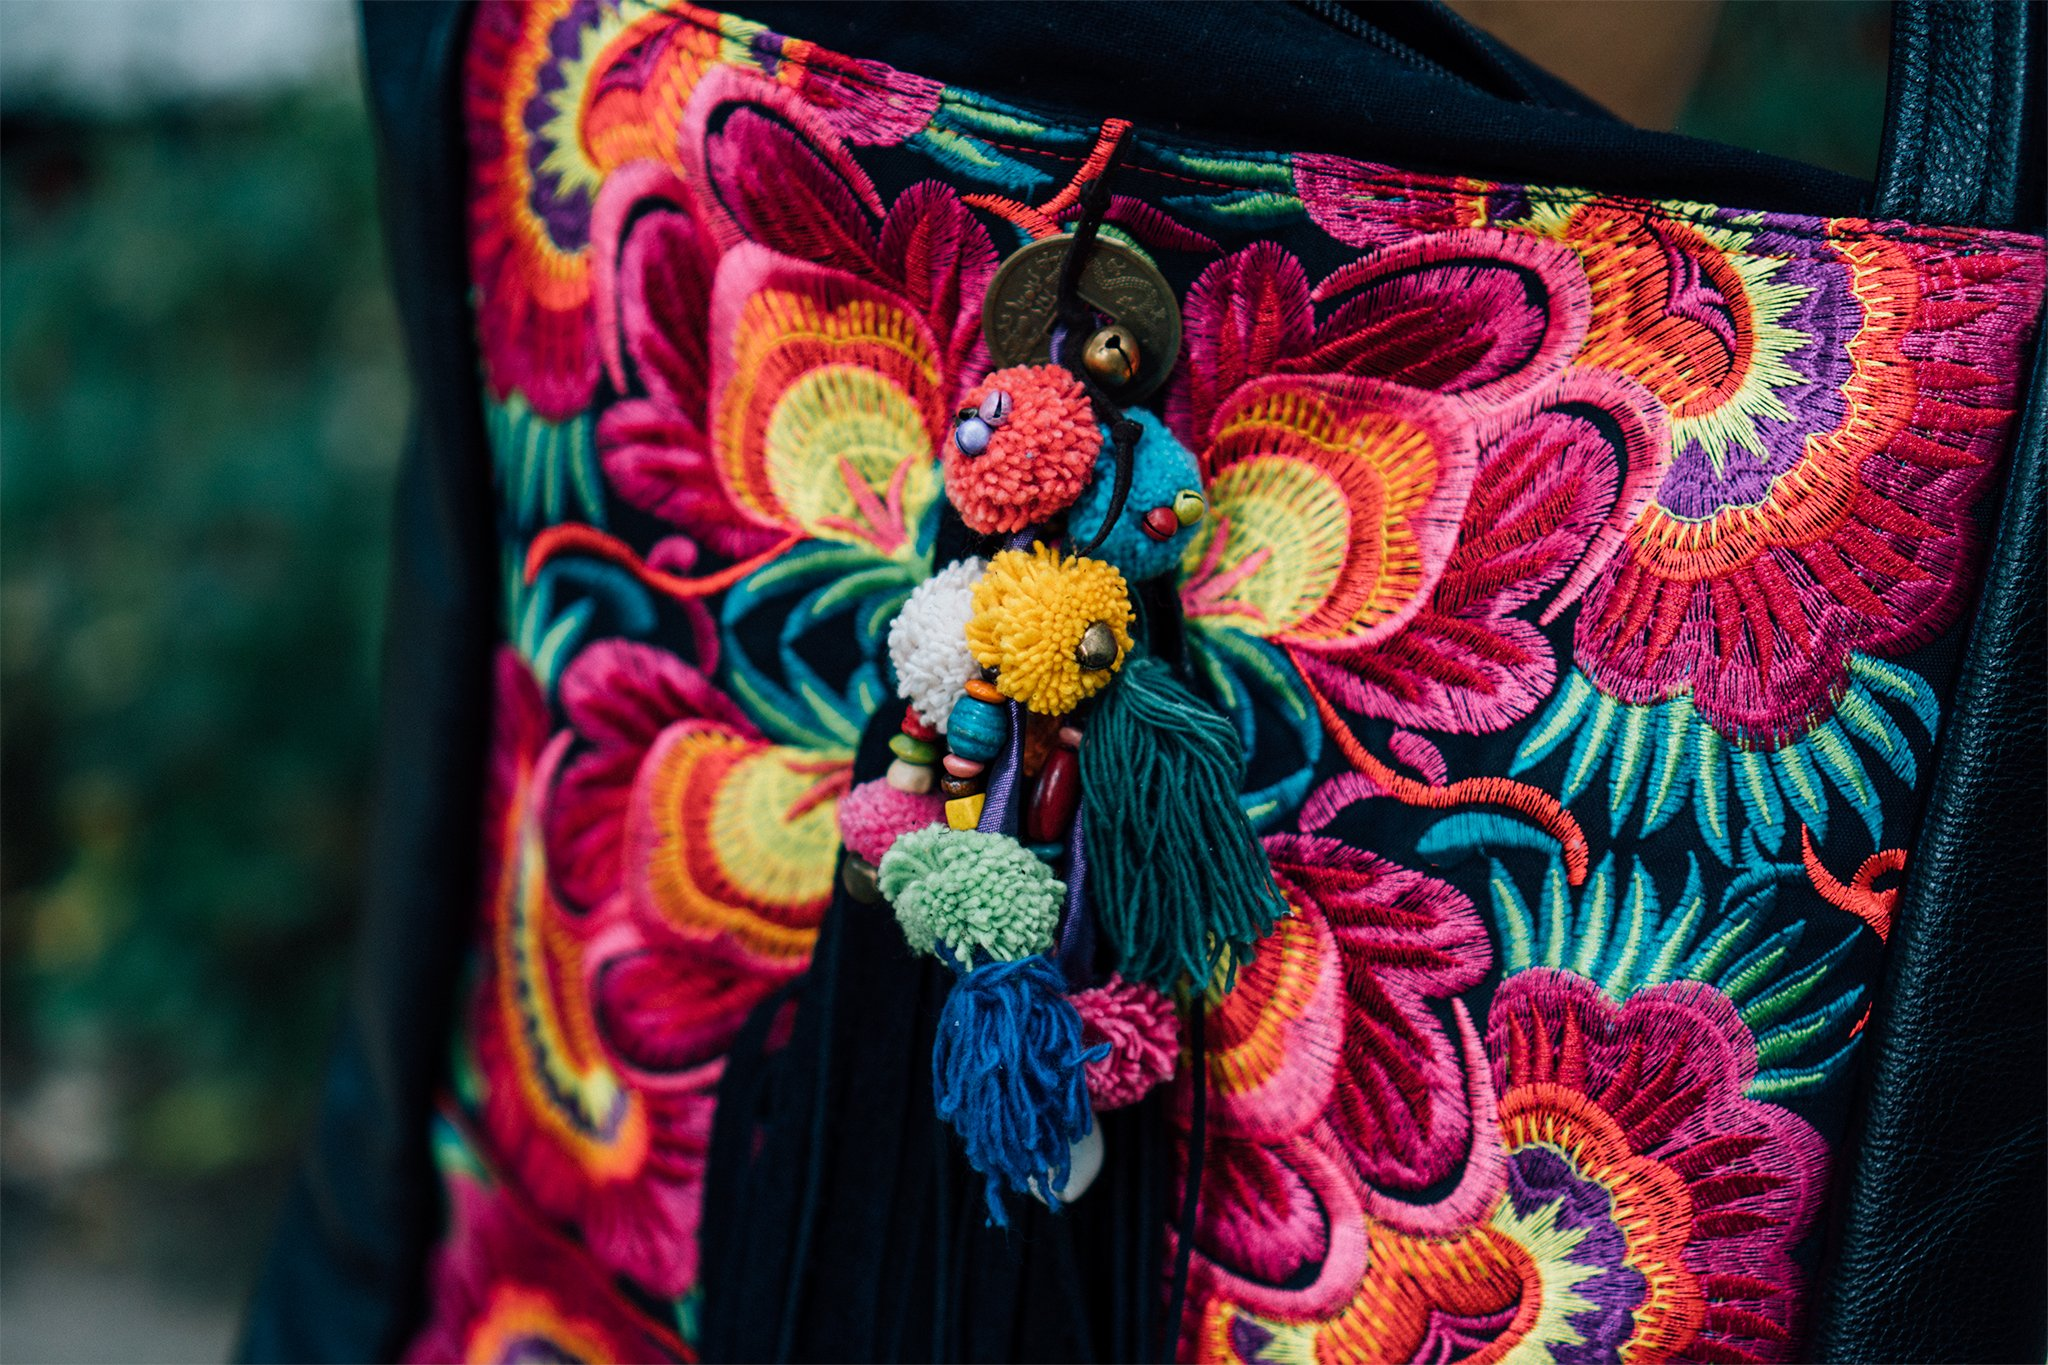 Changnoi Boho Tote Bag with Hmong Embroidered, One of a Kind Bohemian Bag, Pom Pom Shoulder Bag with Fringe - handmade-bags